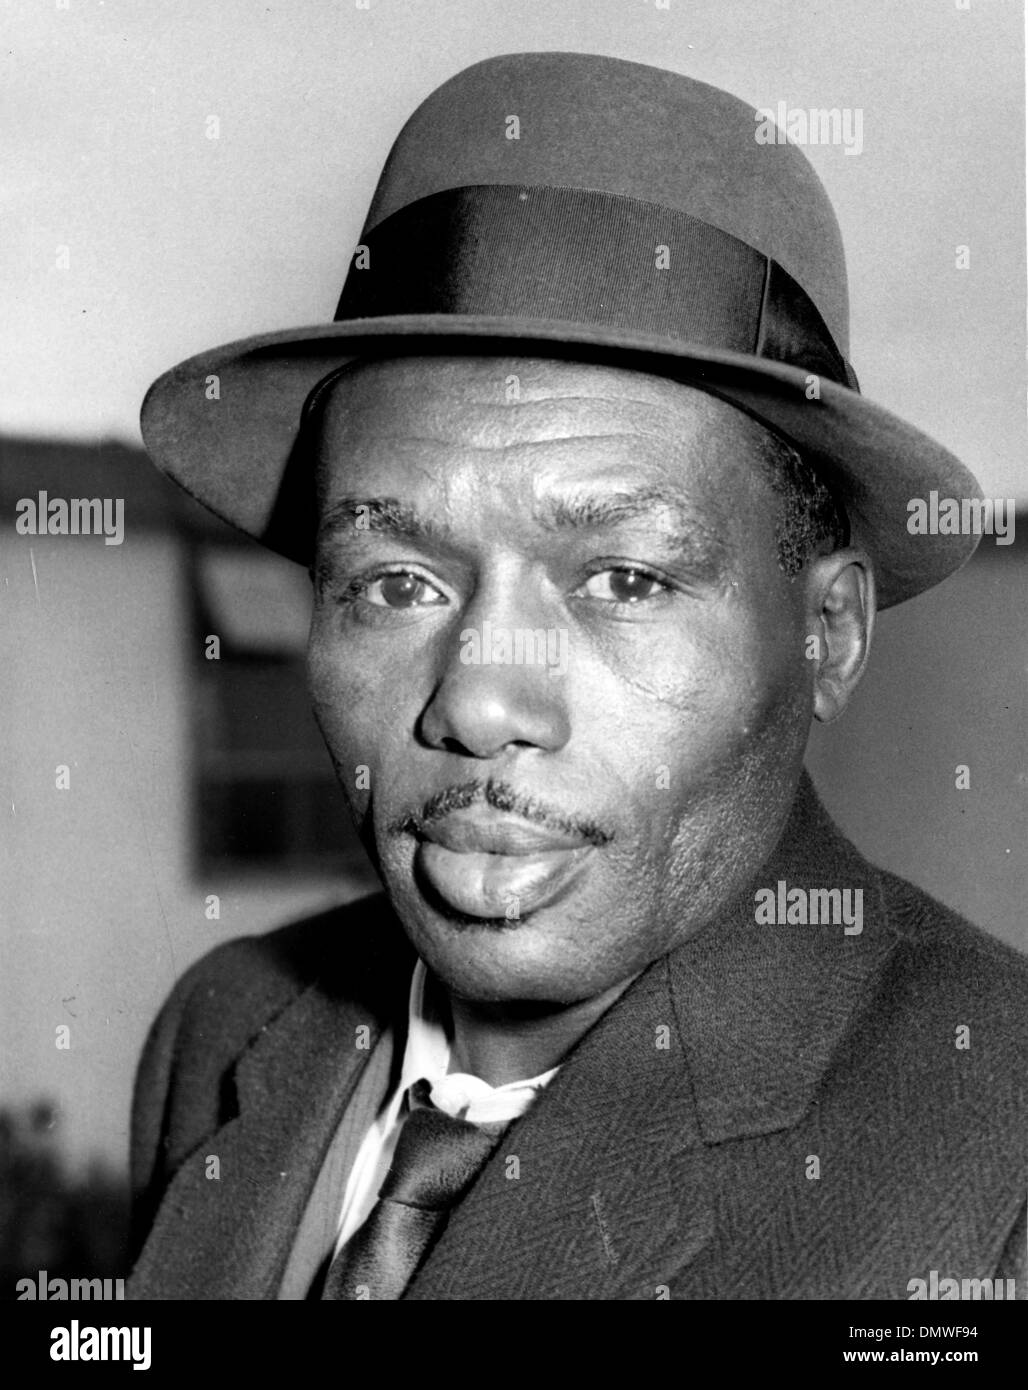 July 4, 1961 - London, England, U.K. - Boxer JOE BROWN is an African American world lightweight championWorld lightweight champion. PICTURED: Brown at the London Airport for his title contest against Dave Charnley at Earls Court. (Credit Image: © KEYSTONE Pictures USA/ZUMAPRESS.com) - Stock Image